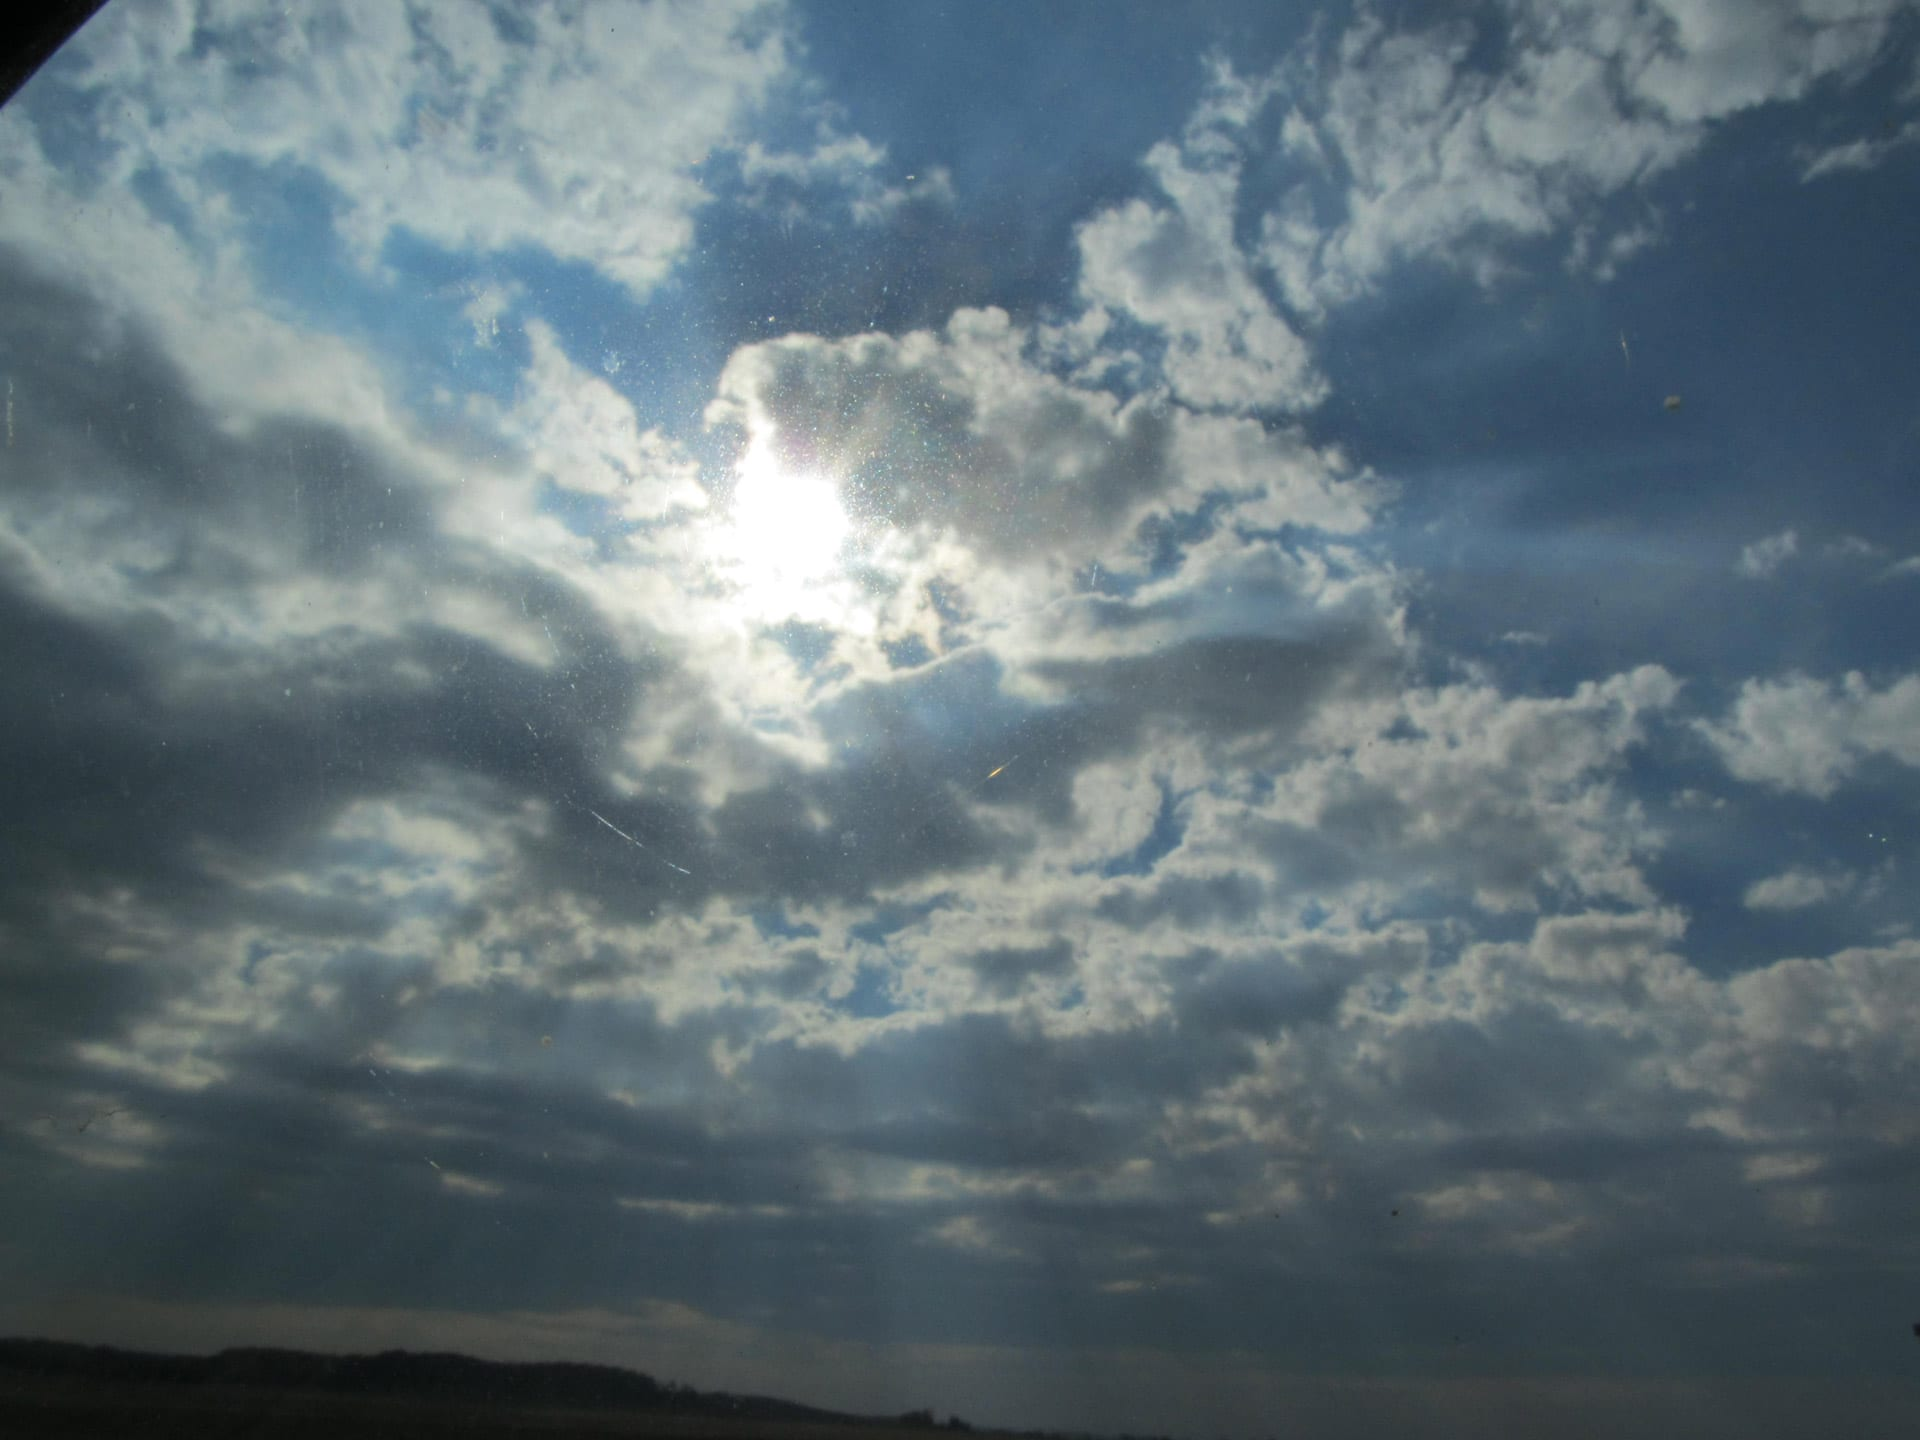 a picture of the sun shinning through clouds make one ask how we know god exists